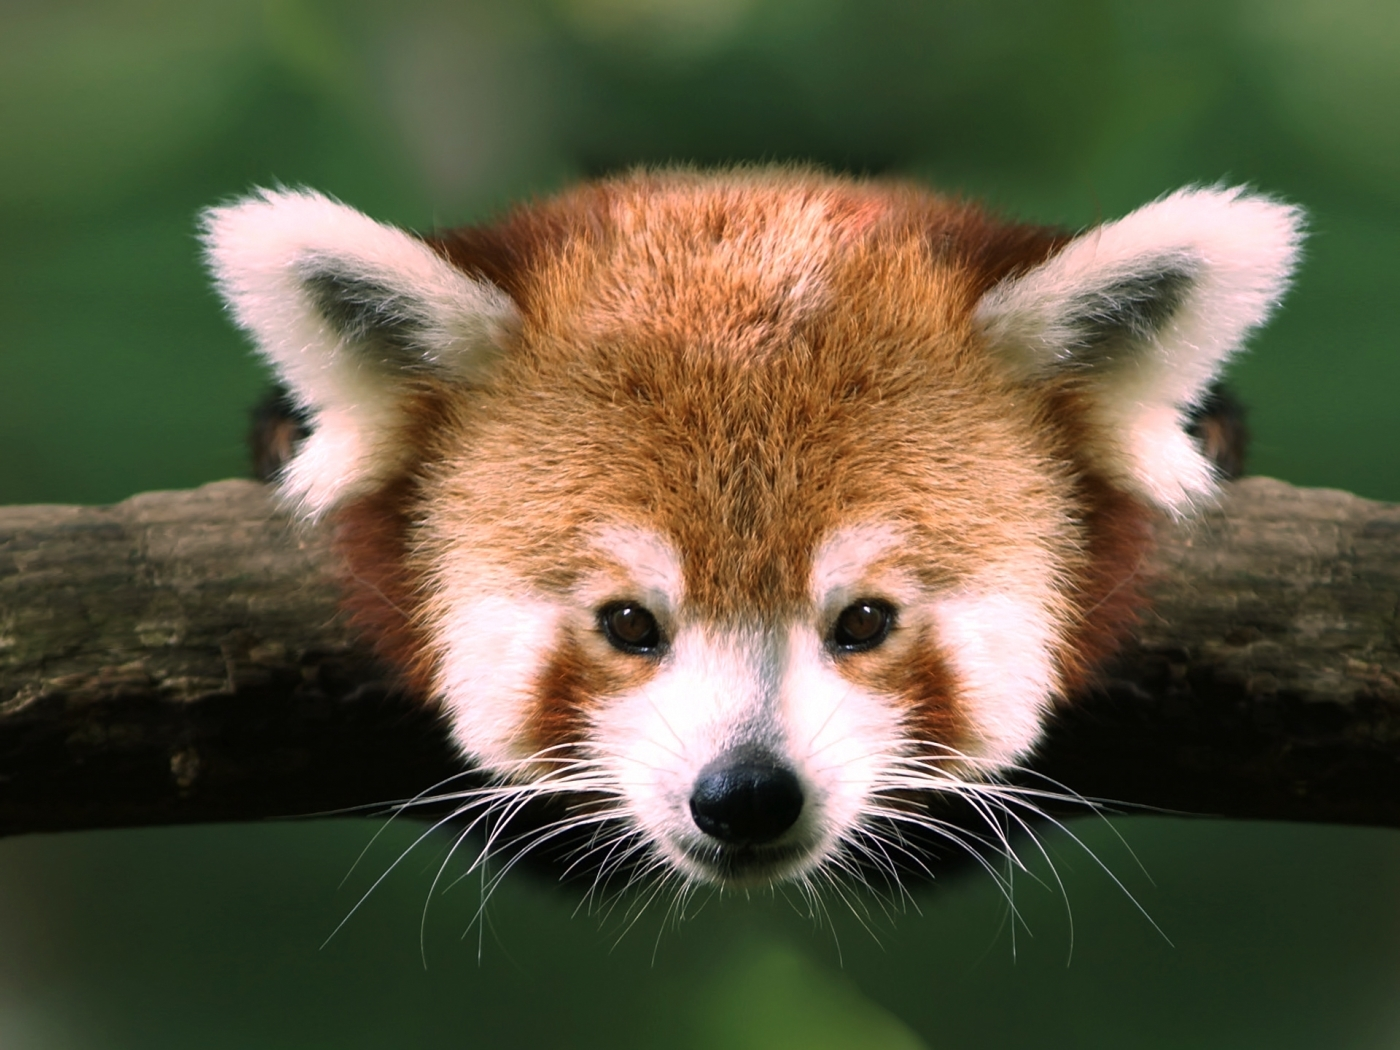 31790 download wallpaper Animals, Pandas screensavers and pictures for free